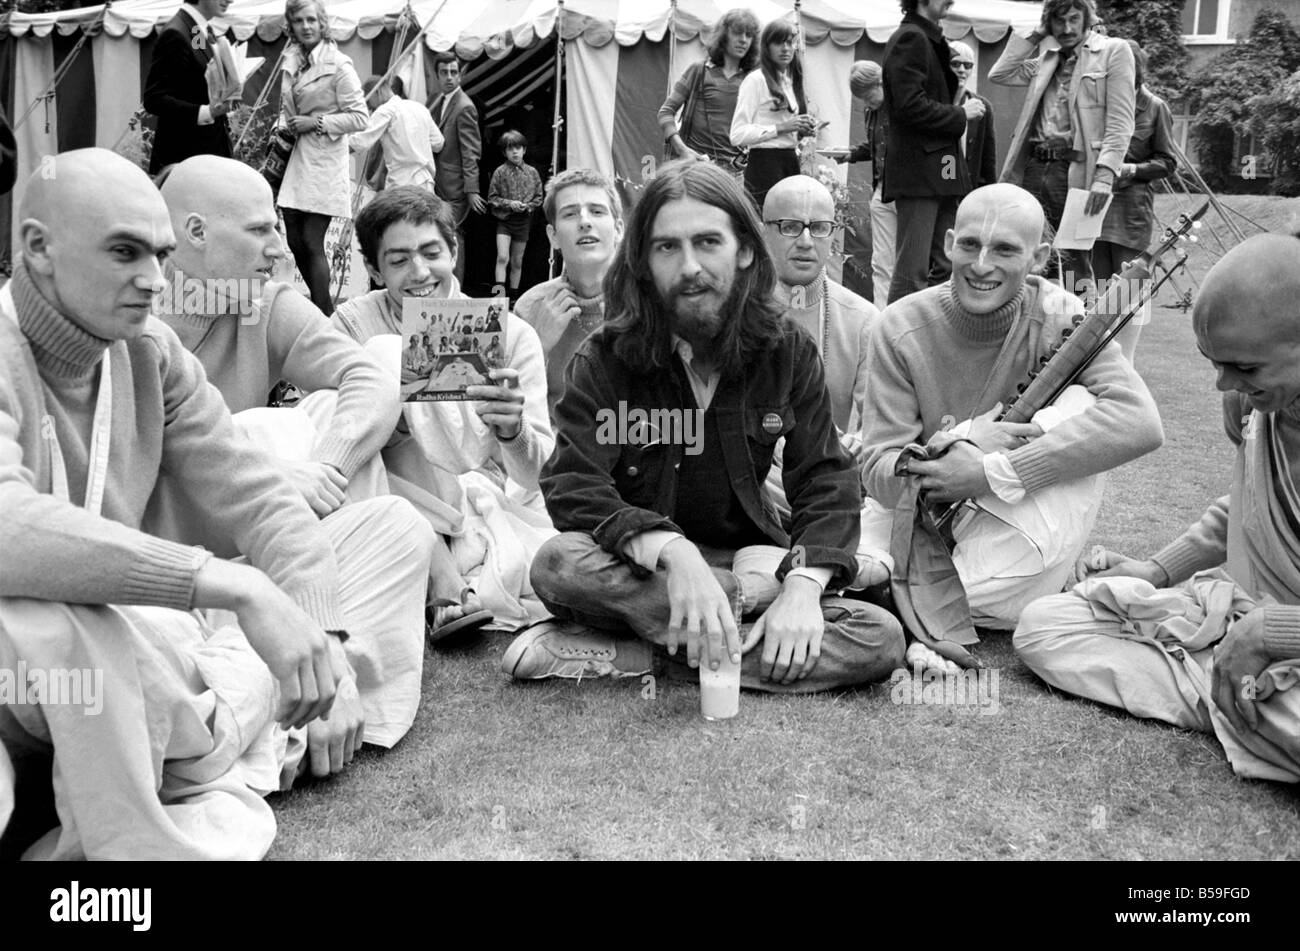 George Harrison of the Beatles pictured amongst the Buddhist American group, The Radha Krishna Temple. August 1969 - Stock Image